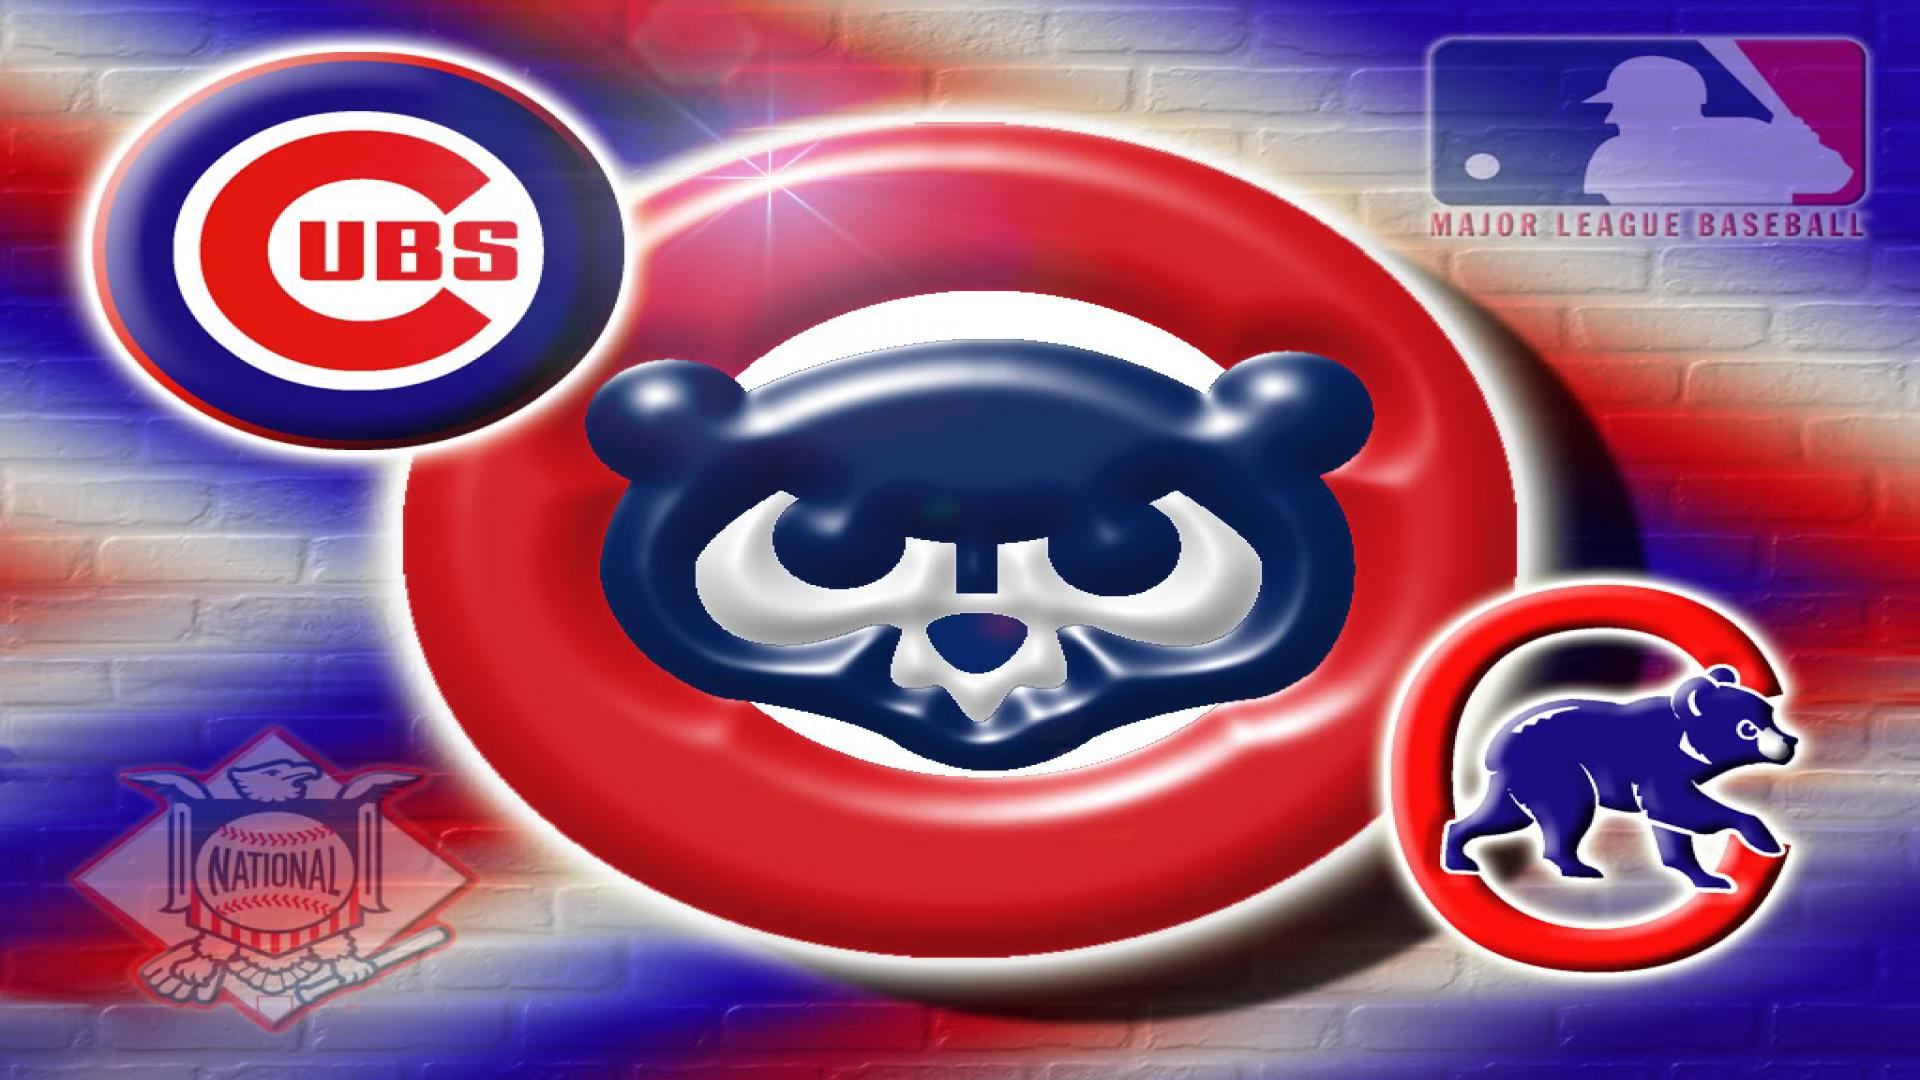 CHICAGO CUBS mlb baseball 16 wallpaper 1920x1080 232522 1920x1080